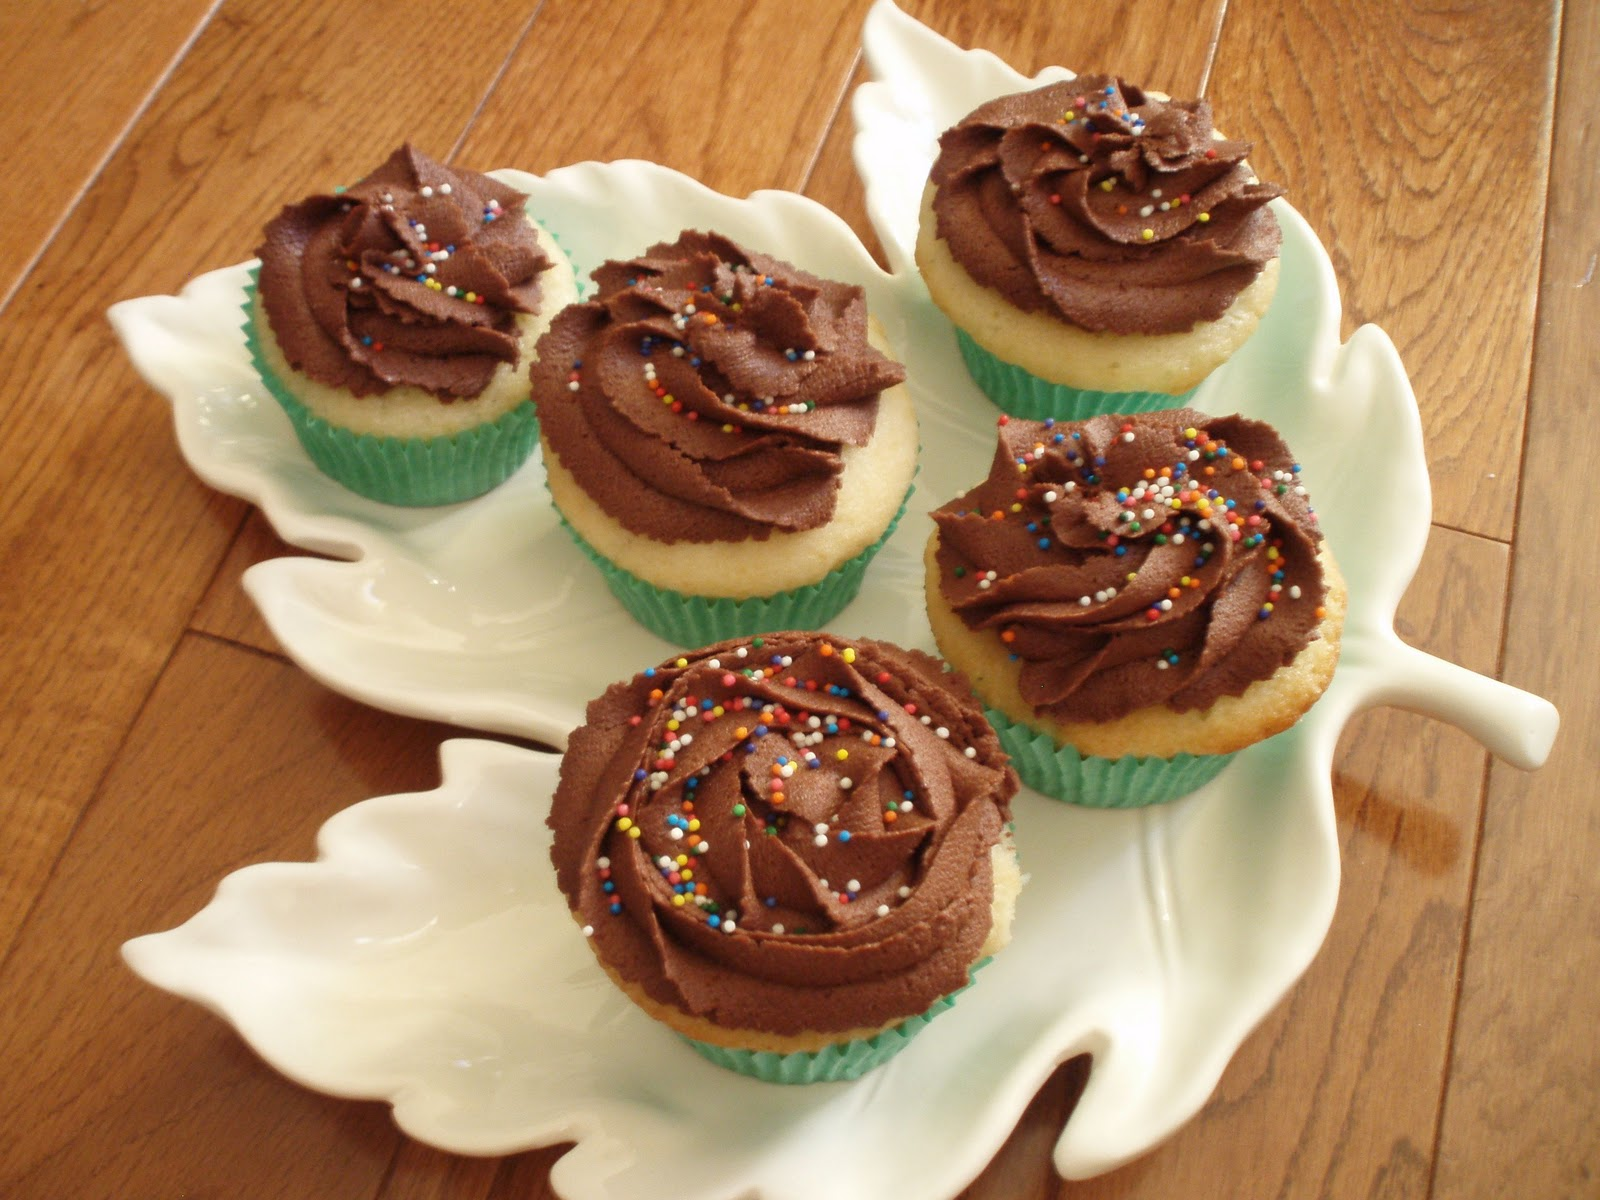 Naked Cupcakes: Vanilla Cupcakes w/ Chocolate Frosting